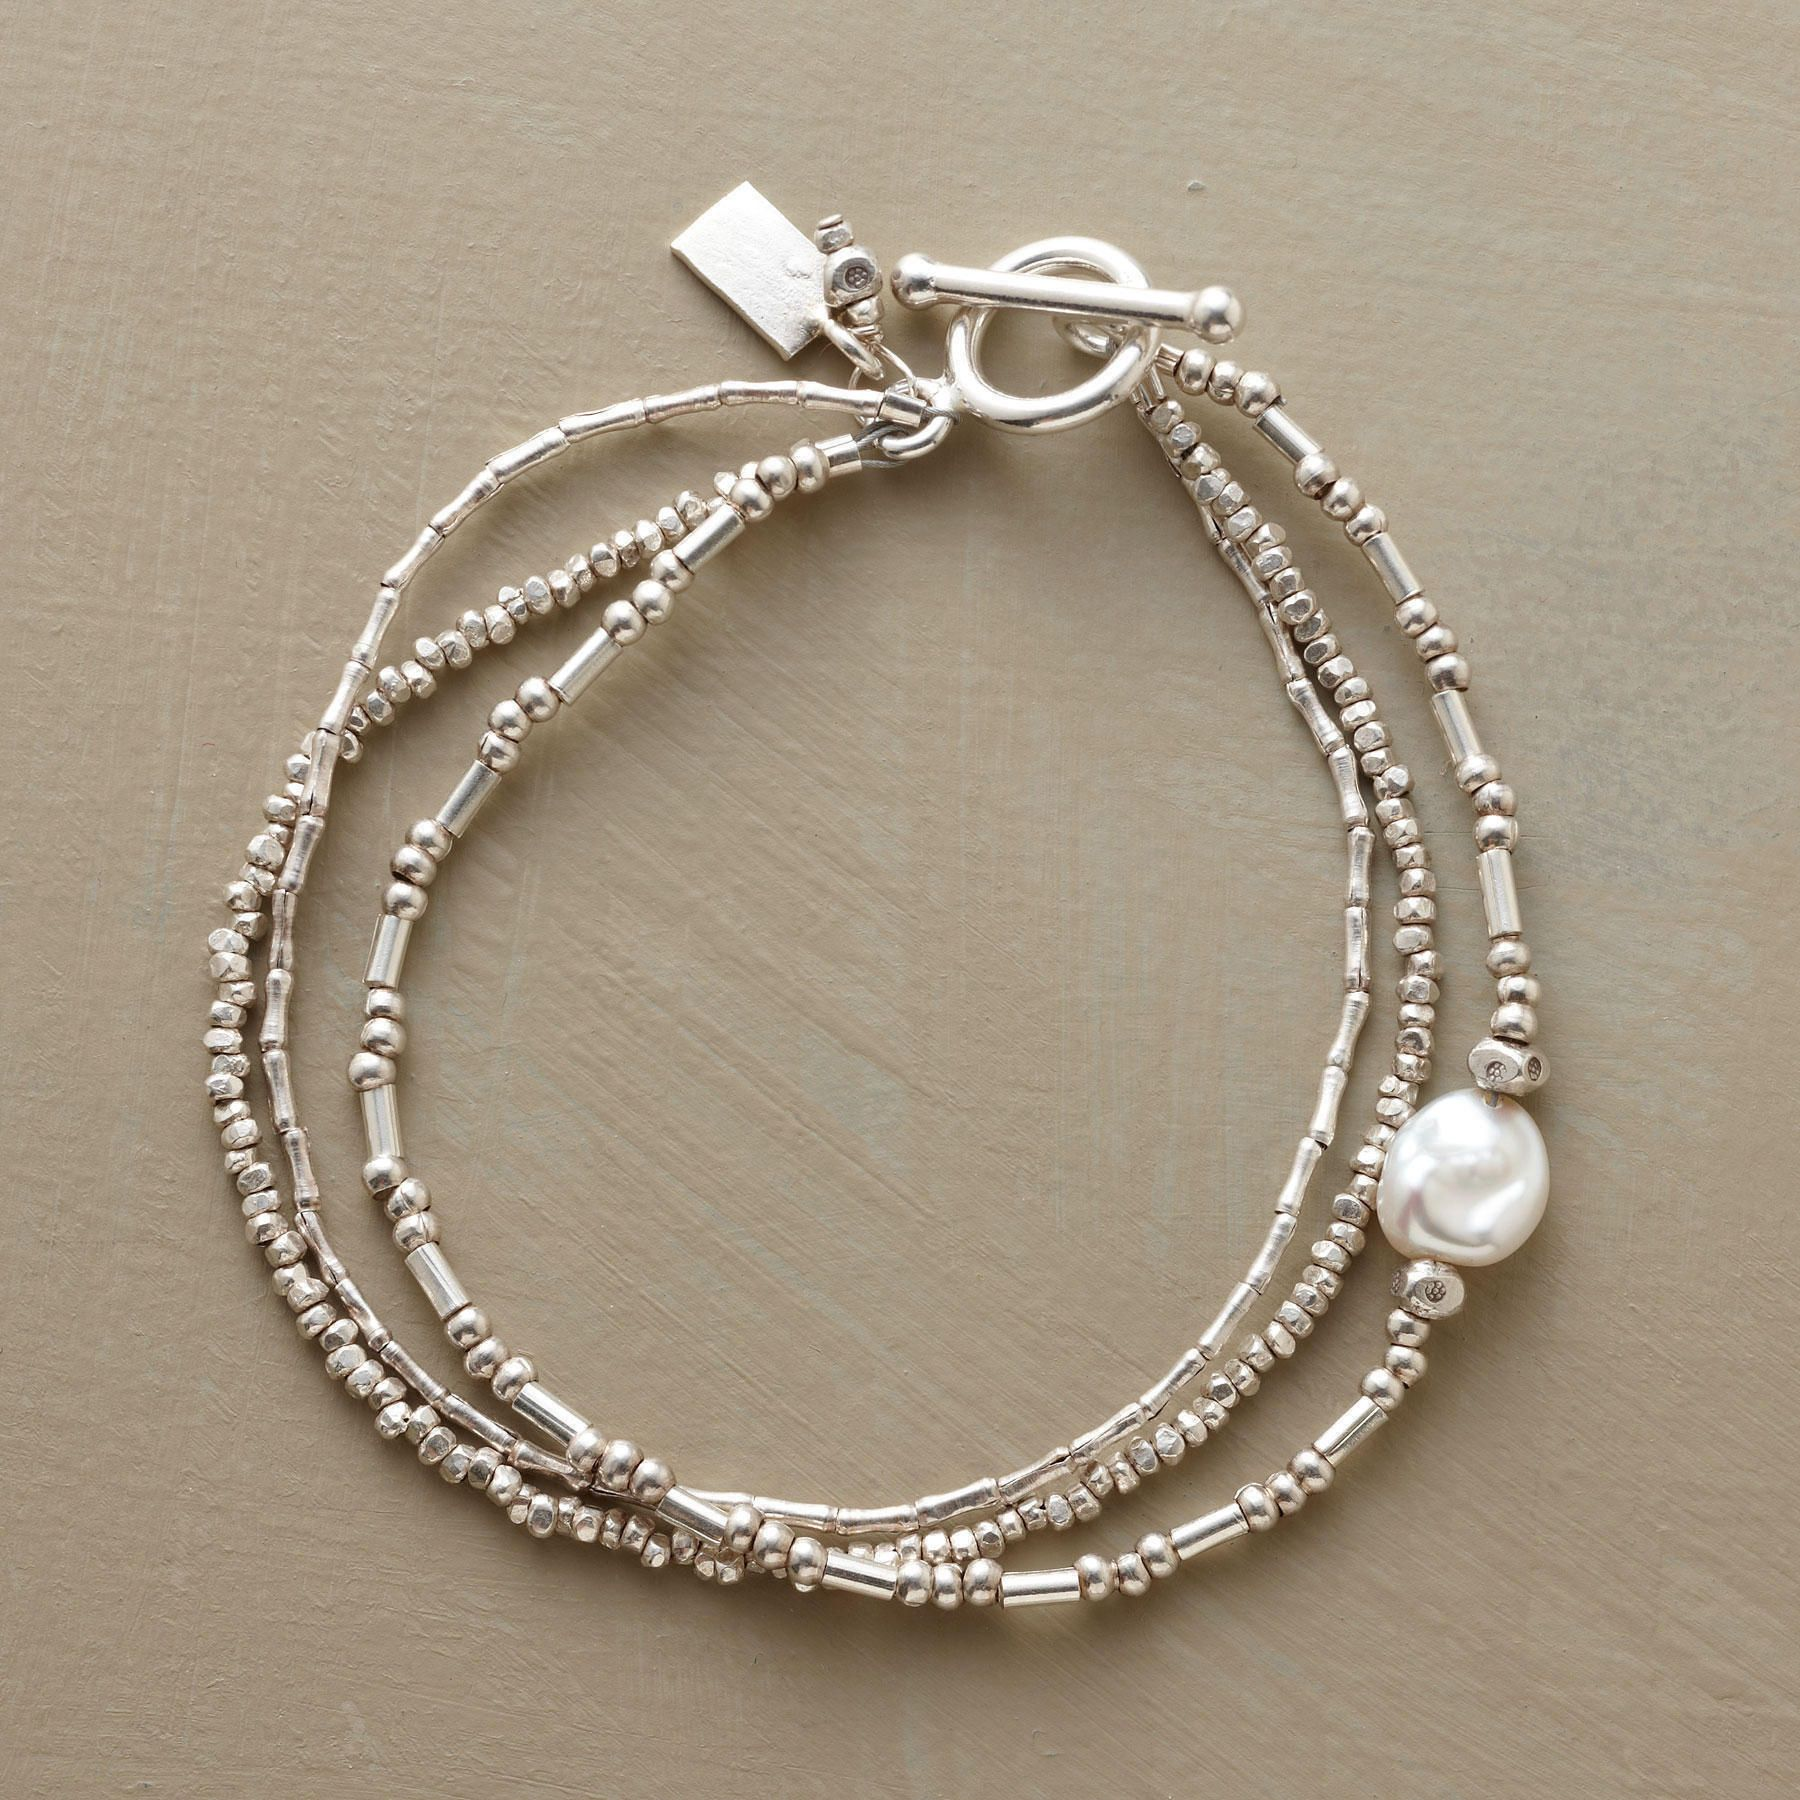 """PEARLS IN THE STREAM BRACELET--A luminous freshwater pearl punctuates a rippling rivulet of triple-strand sterling silver beads strung in three different beading arrangements. Made in USA. Exclusive. 7-1/2""""L."""